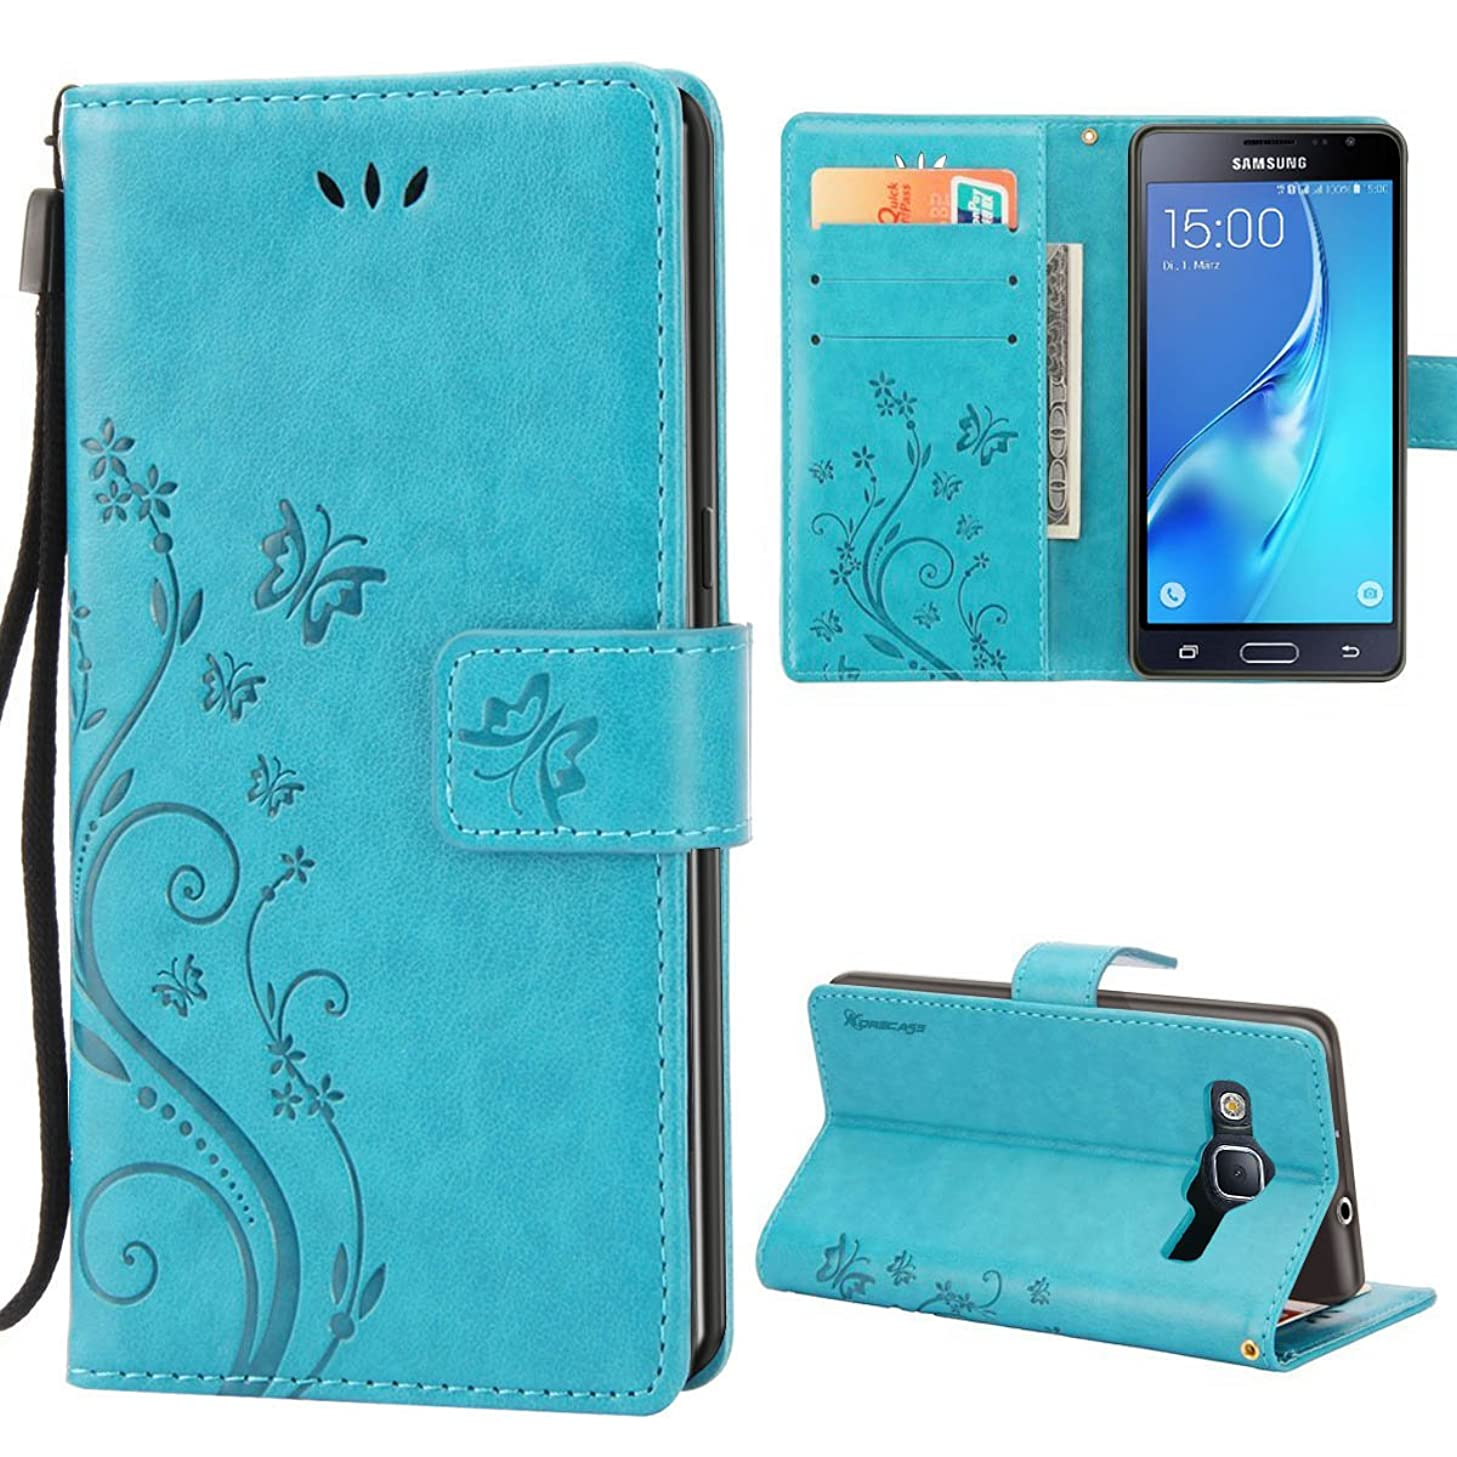 Galaxy J3 Case,Premiun Wallet Leather Credit Card Holder Butterfly Flower Pattern Flip Folio Stand Case for Samsung Galaxy J3 2016 J320 & Amp Prime & Express Prime With a Wrist Strap - Blue